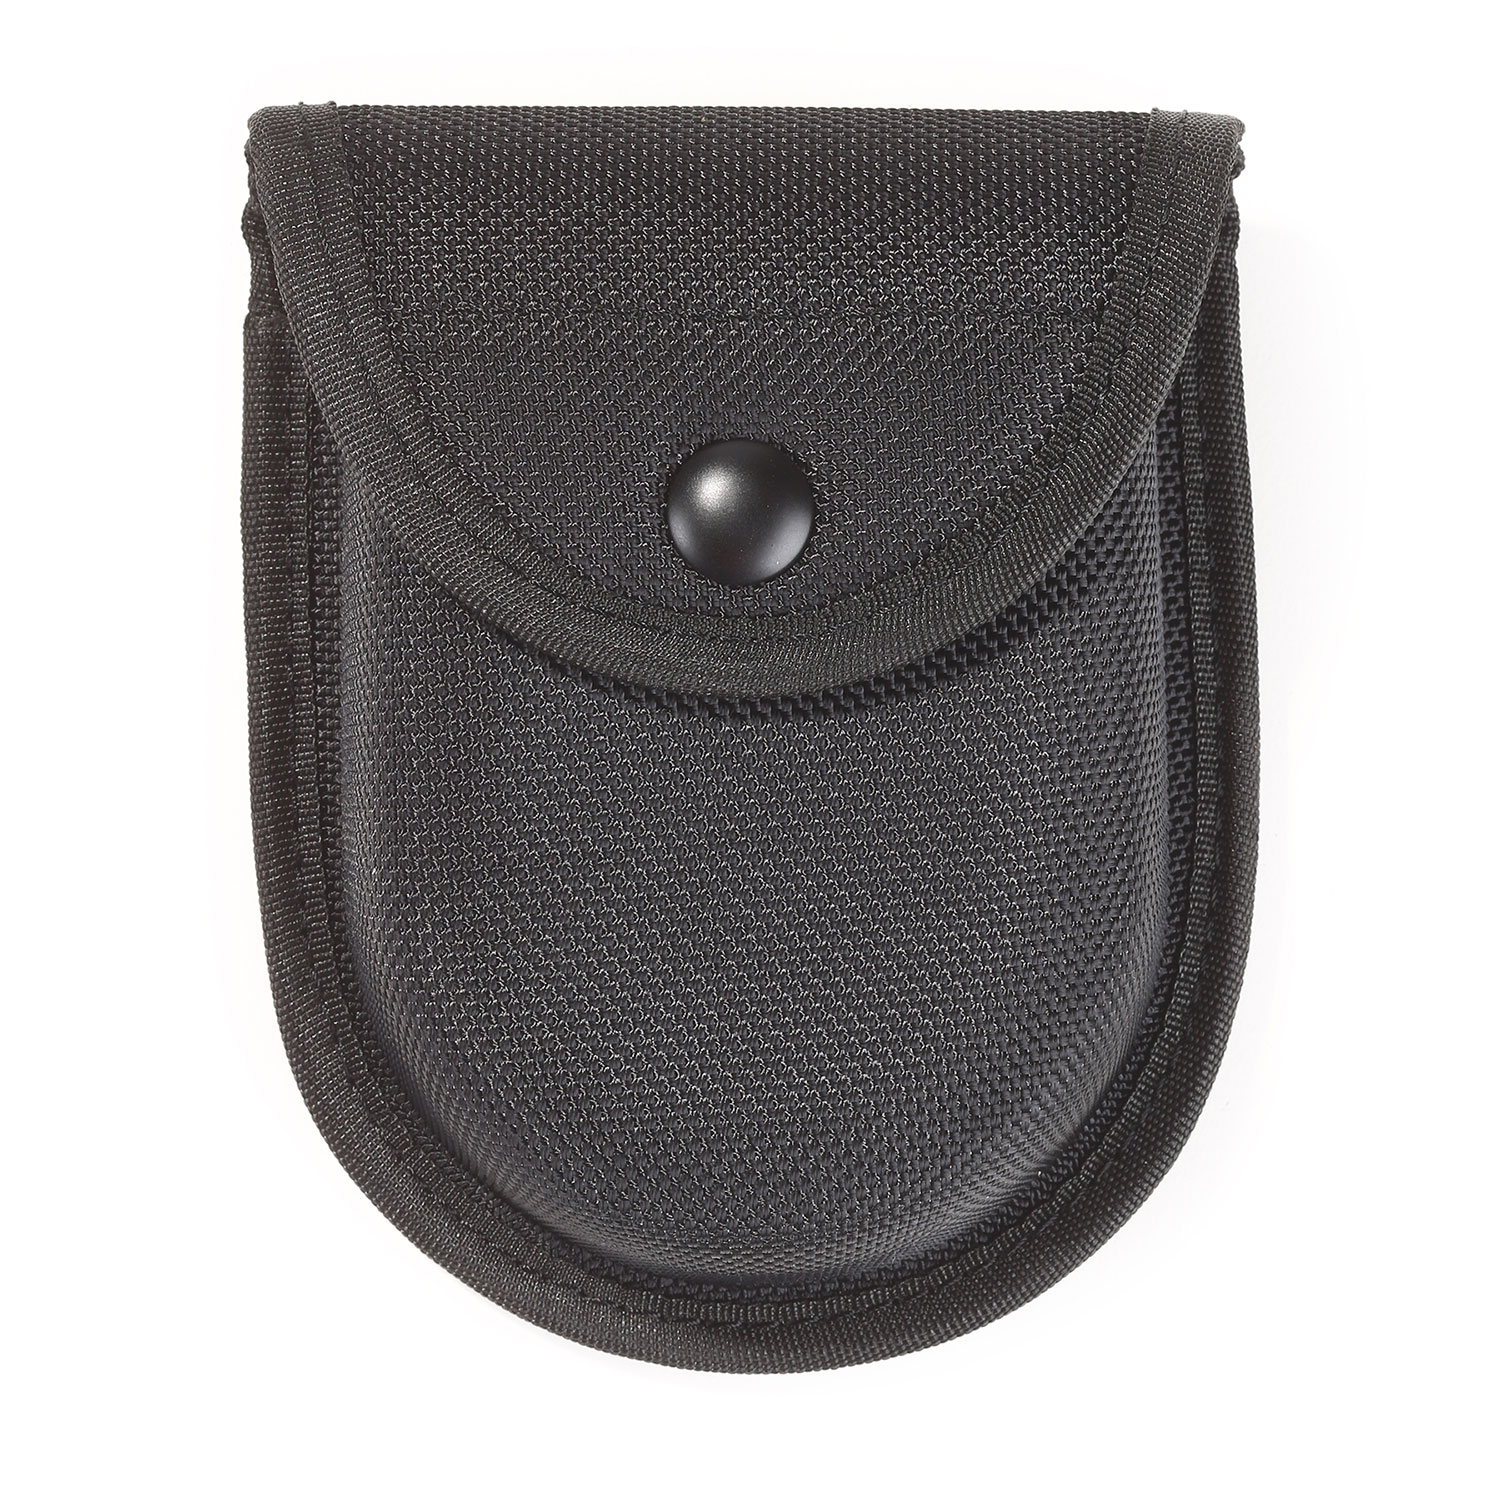 Lawpro Molded Single Handcuff Case